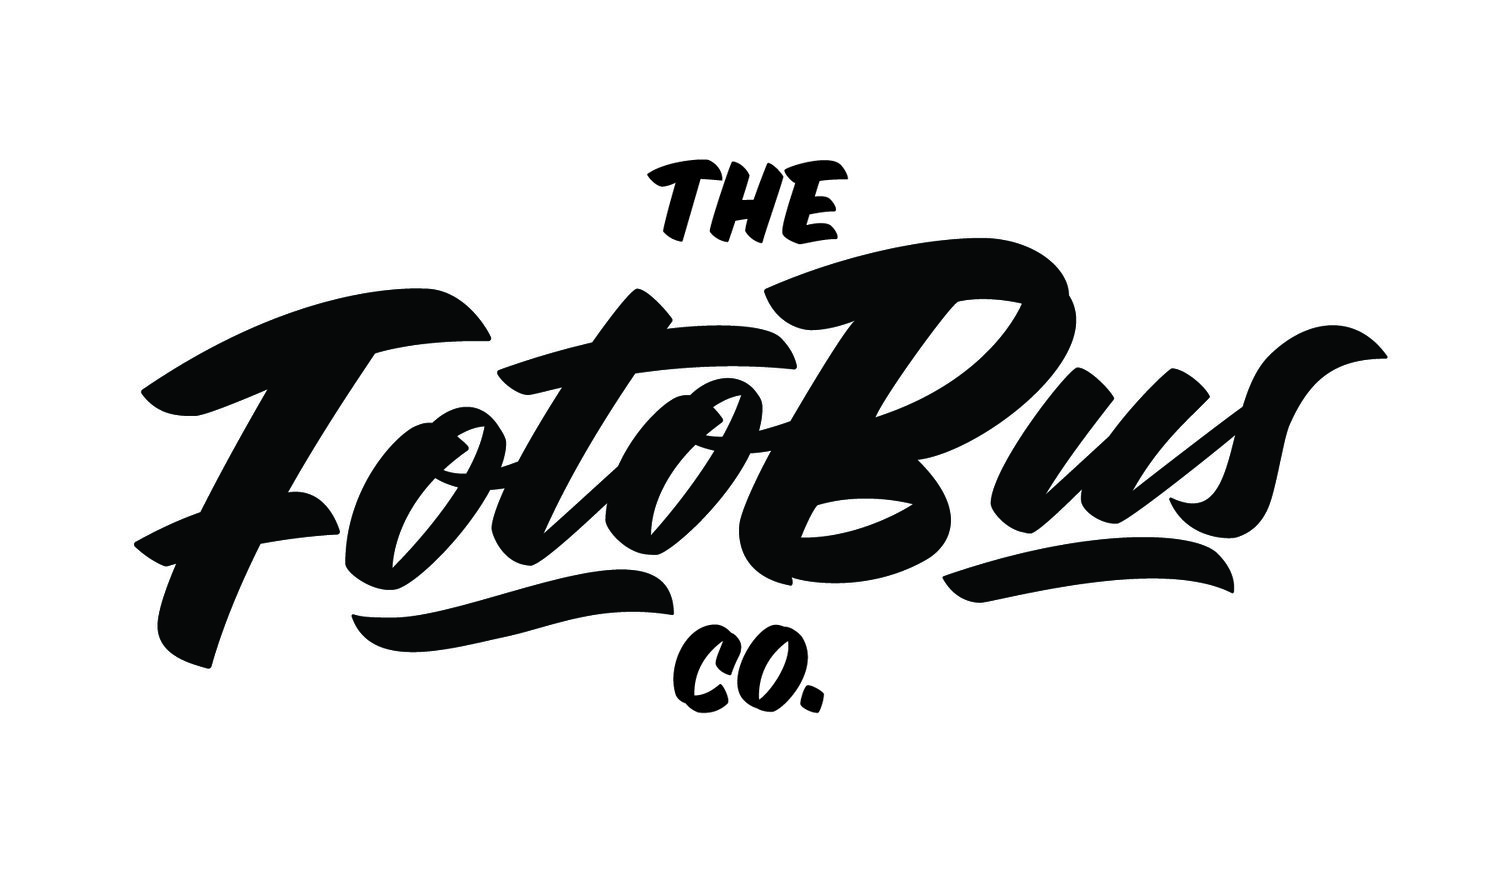 The FotoBus Co.